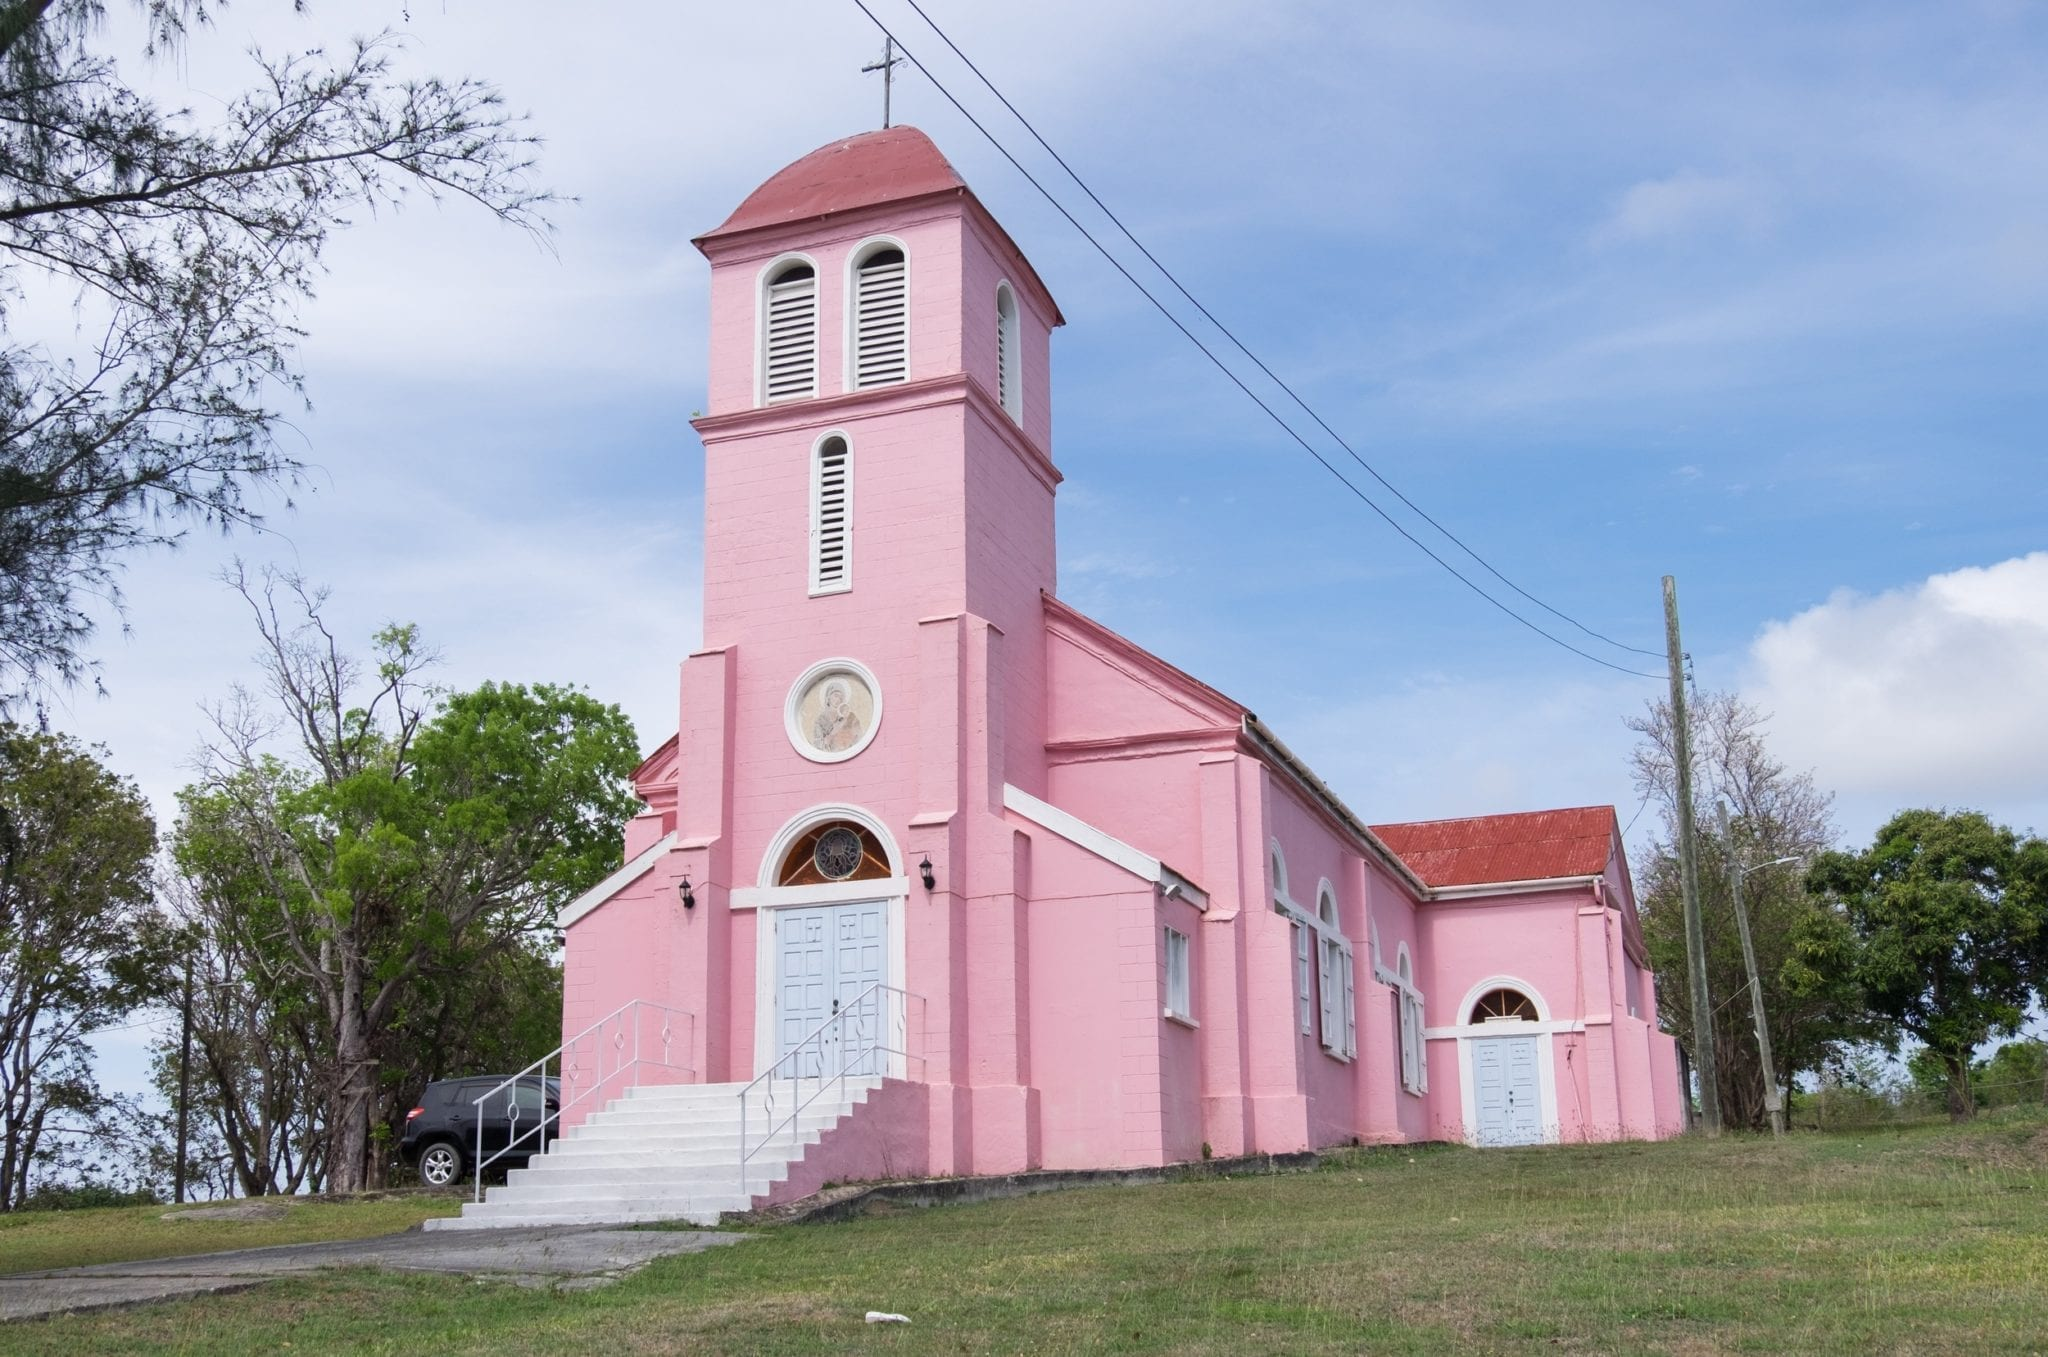 A small pink church is perched on a hill in Antigua with a soft blue and white sky in the background.